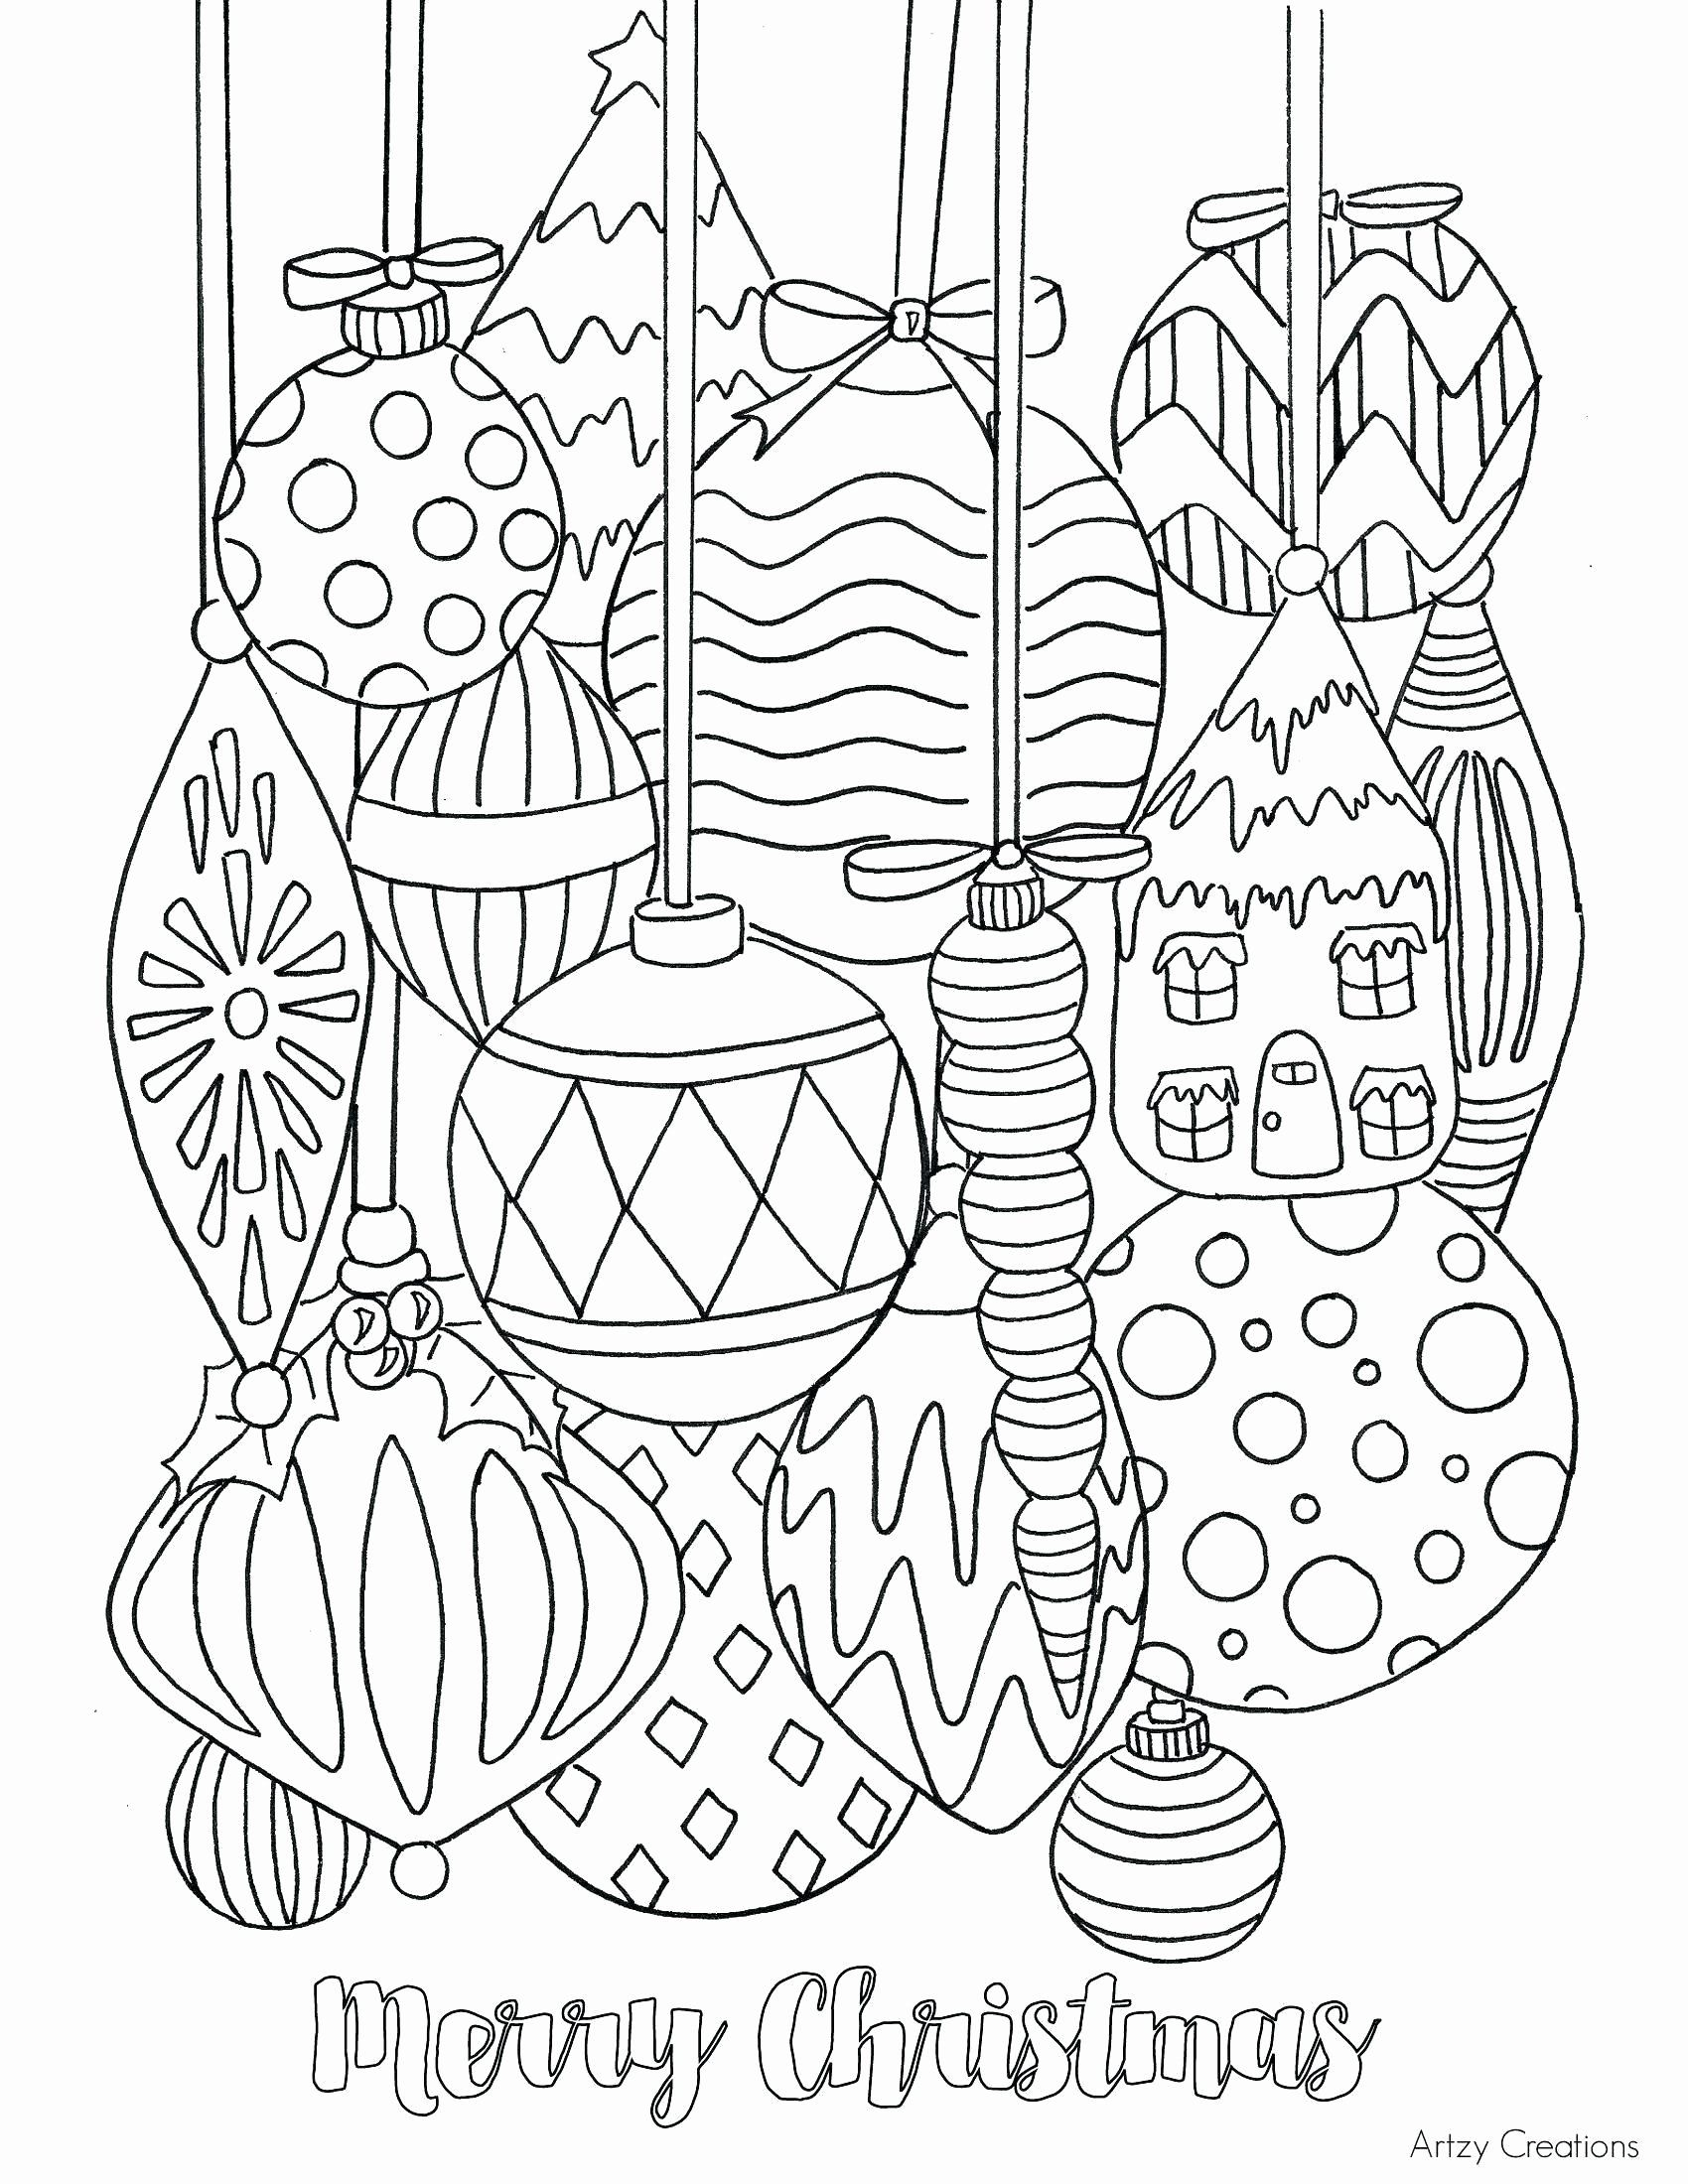 Make A Coloring Book Beautiful How To Make Coloring Book Art Awesome In 2020 Free Christmas Coloring Pages Christmas Coloring Books Printable Christmas Coloring Pages